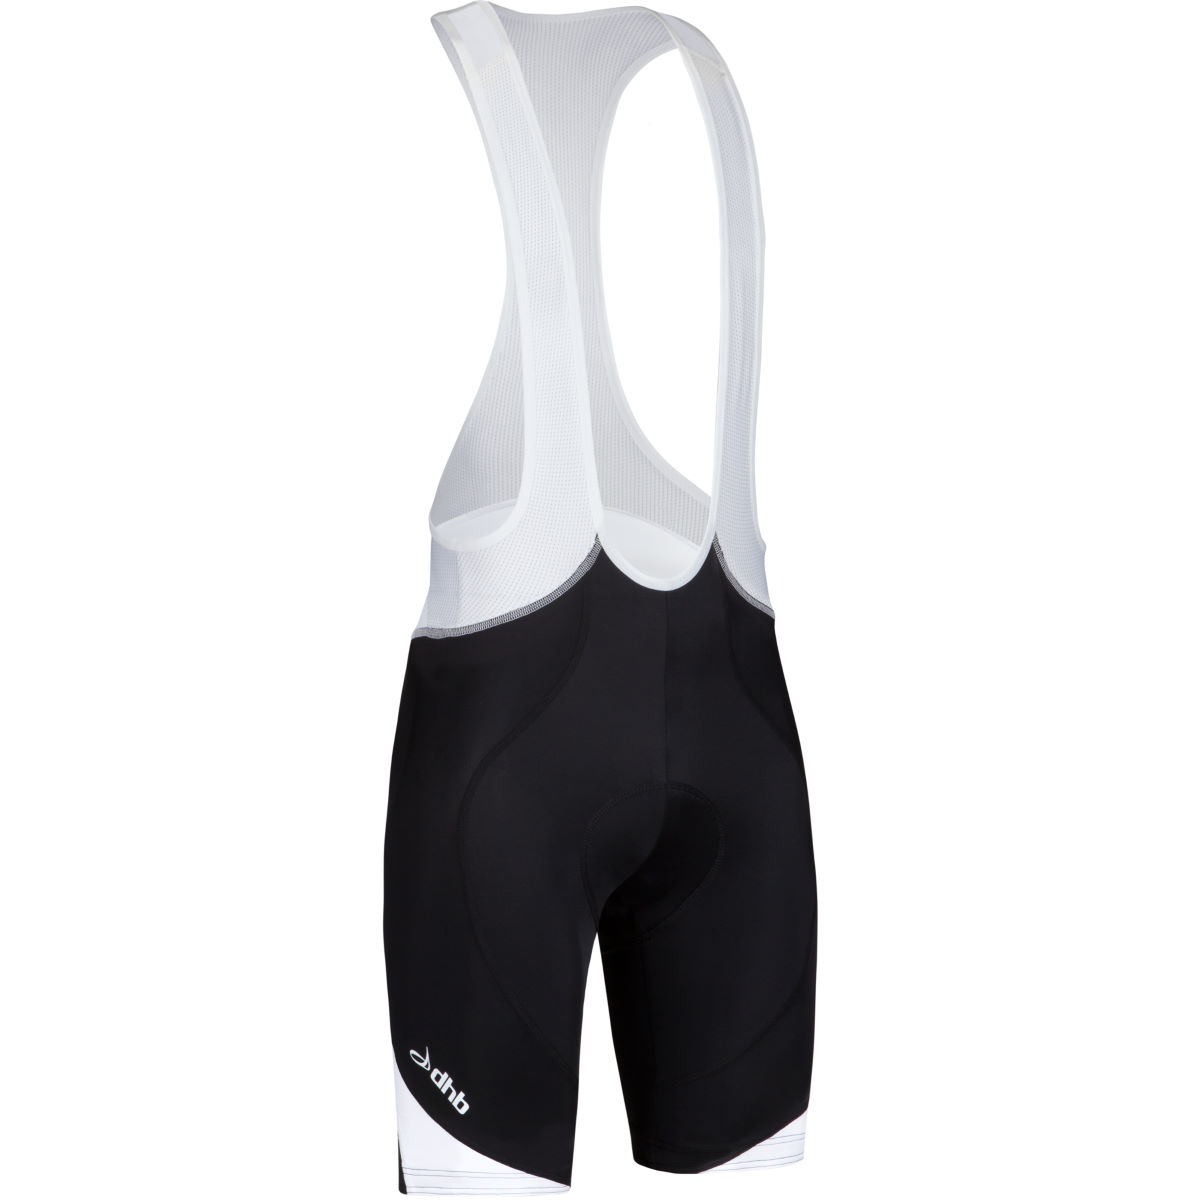 dhb Aeron Race Cycling Bib Short